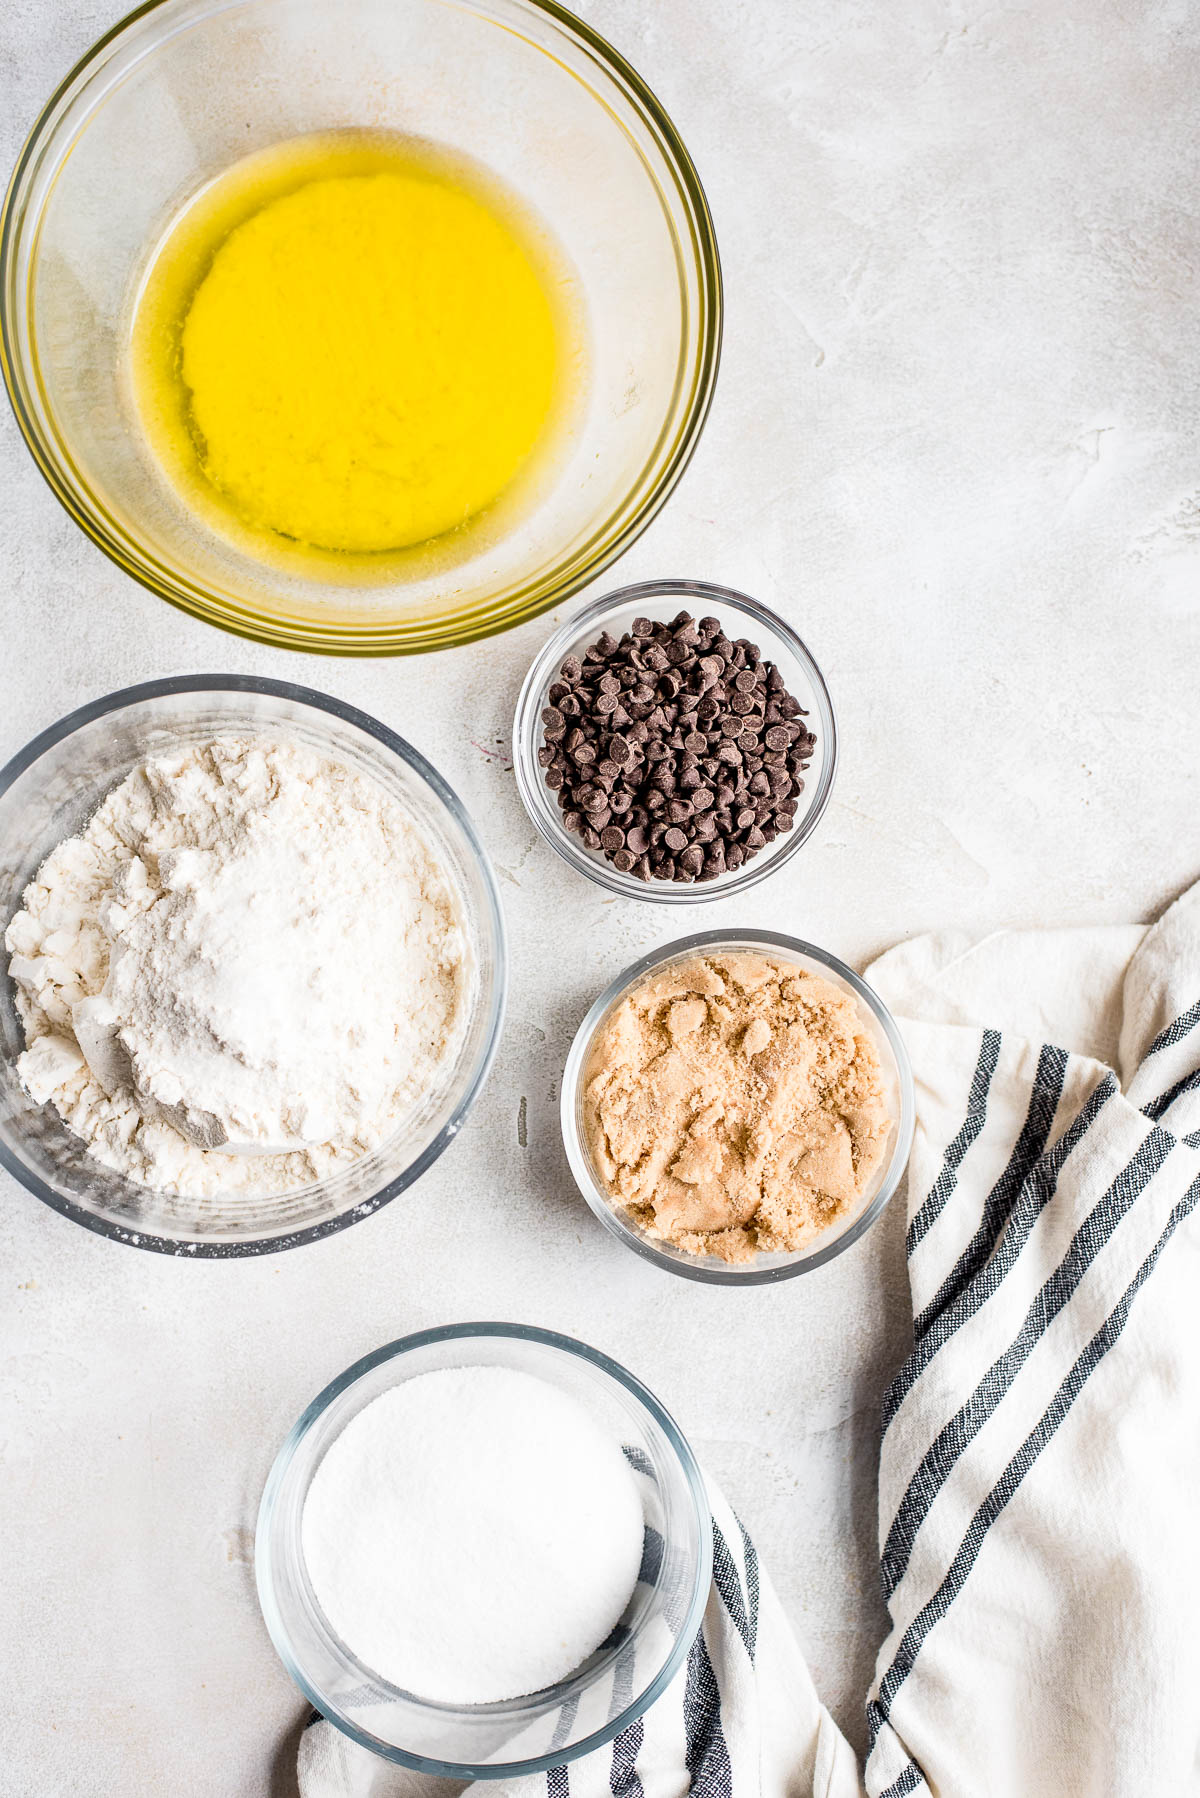 ingredients to make edible cookie dough